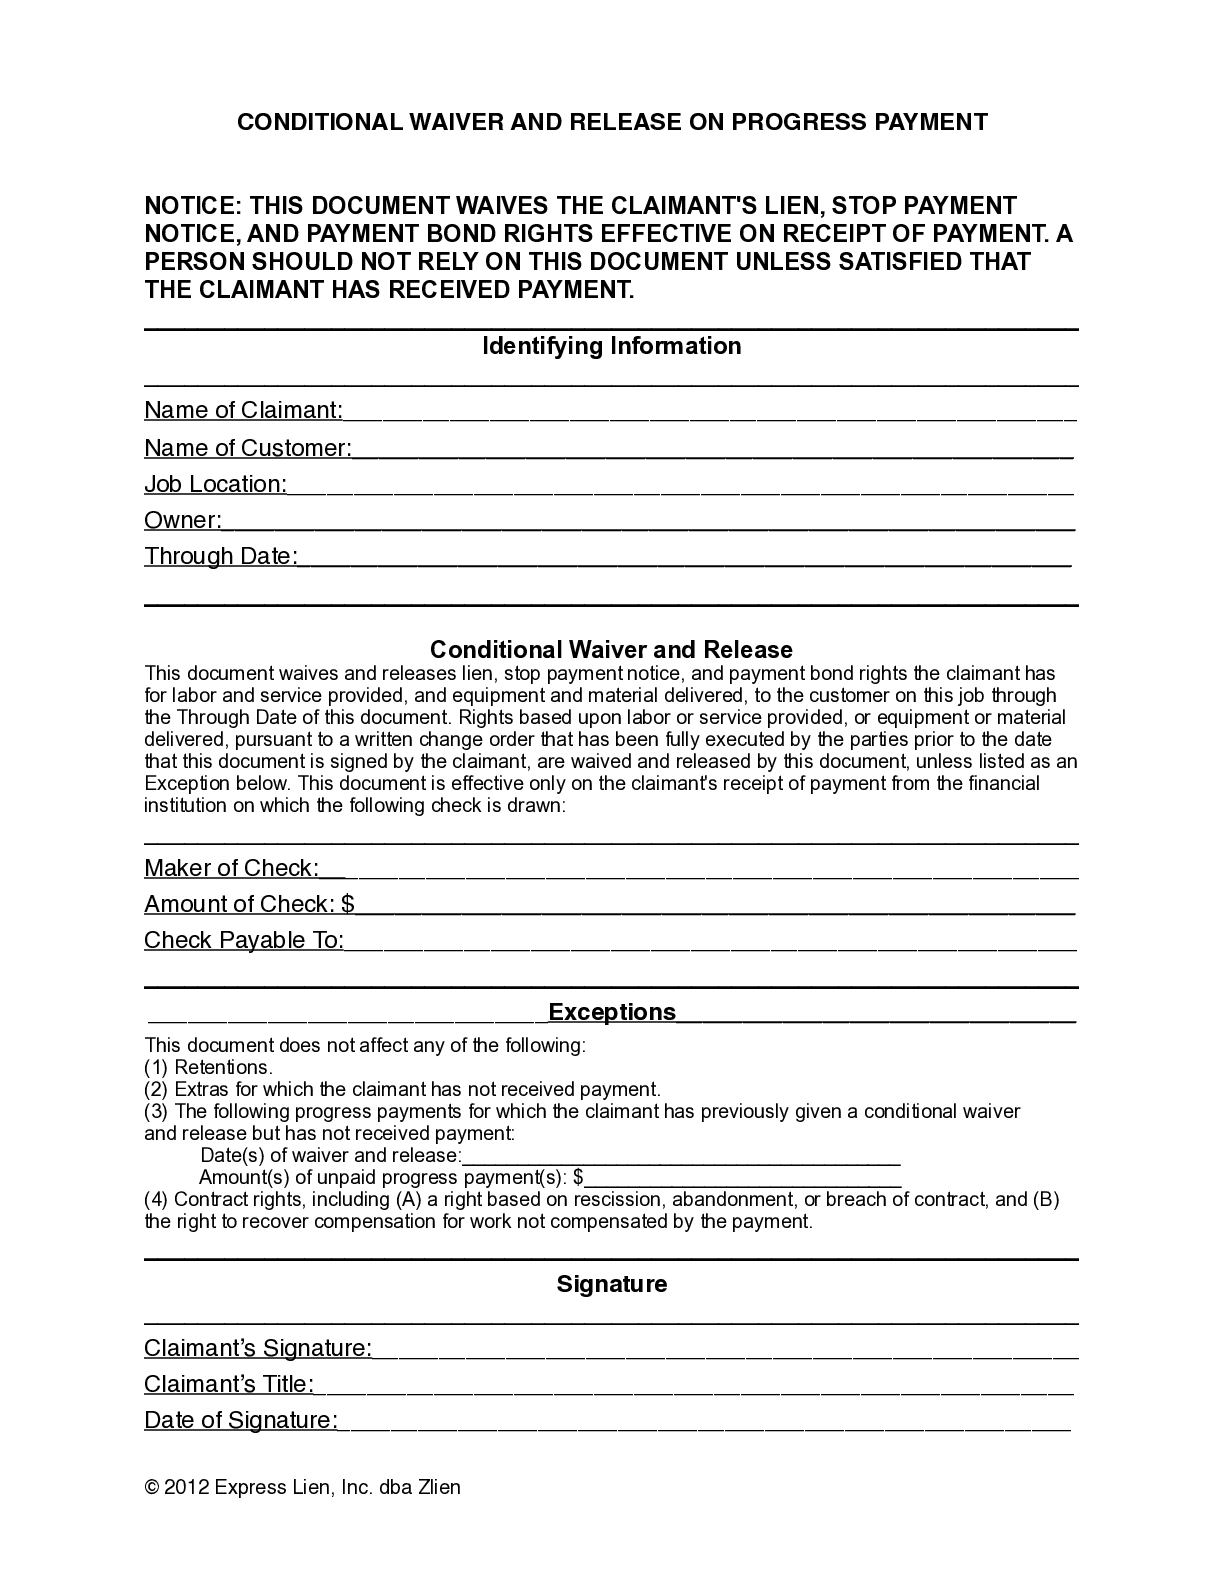 North Carolina Partial Conditional Lien Waiver Form - free from